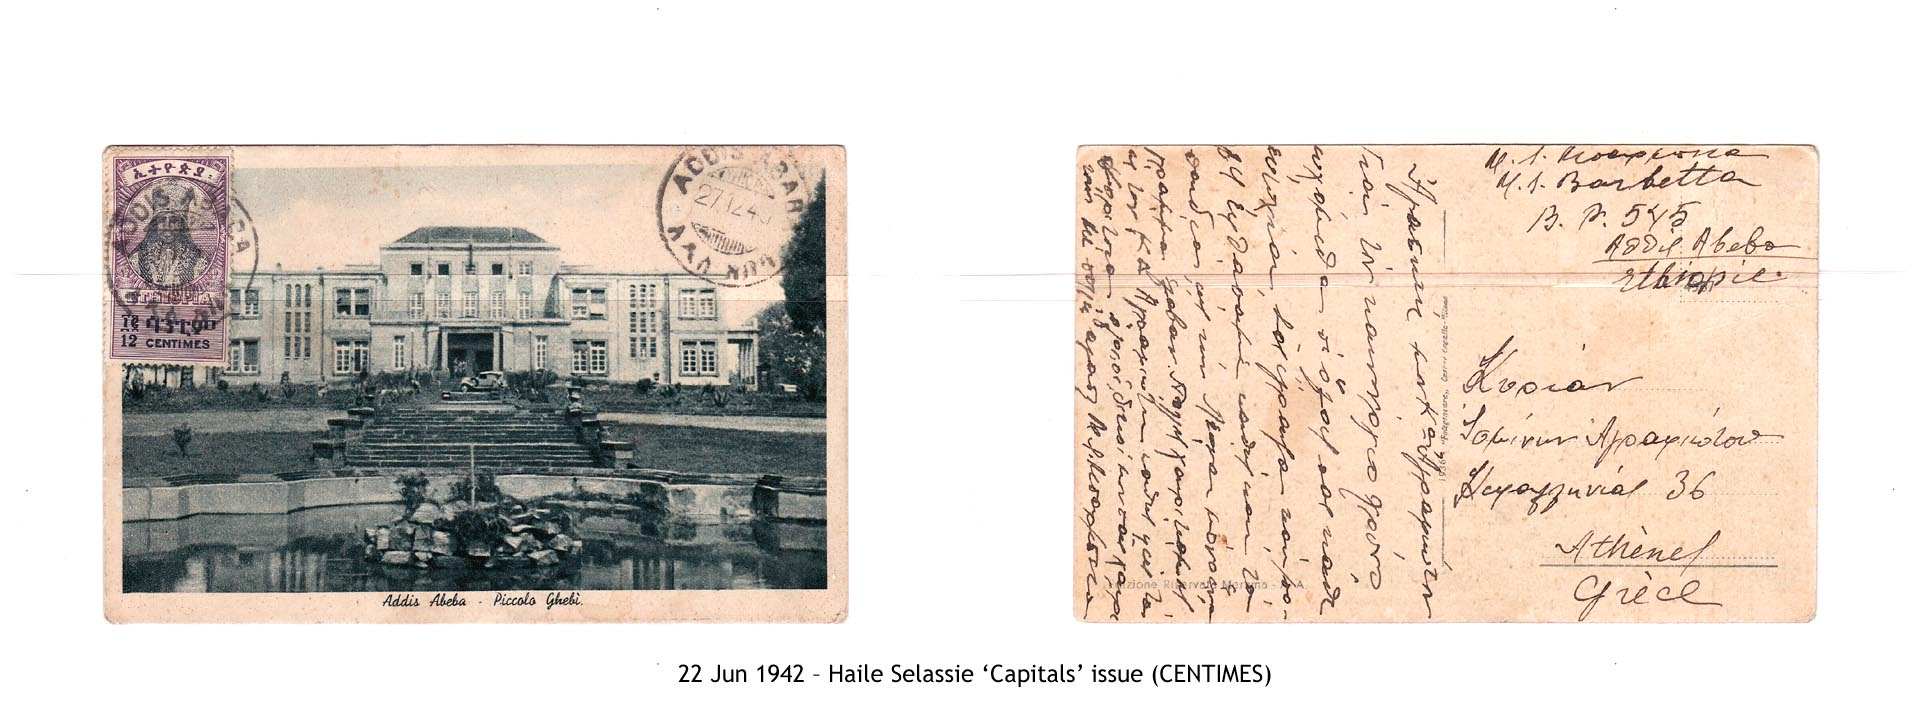 19420622 – Haile Selassie 'Capitals' issue (CENTIMES)